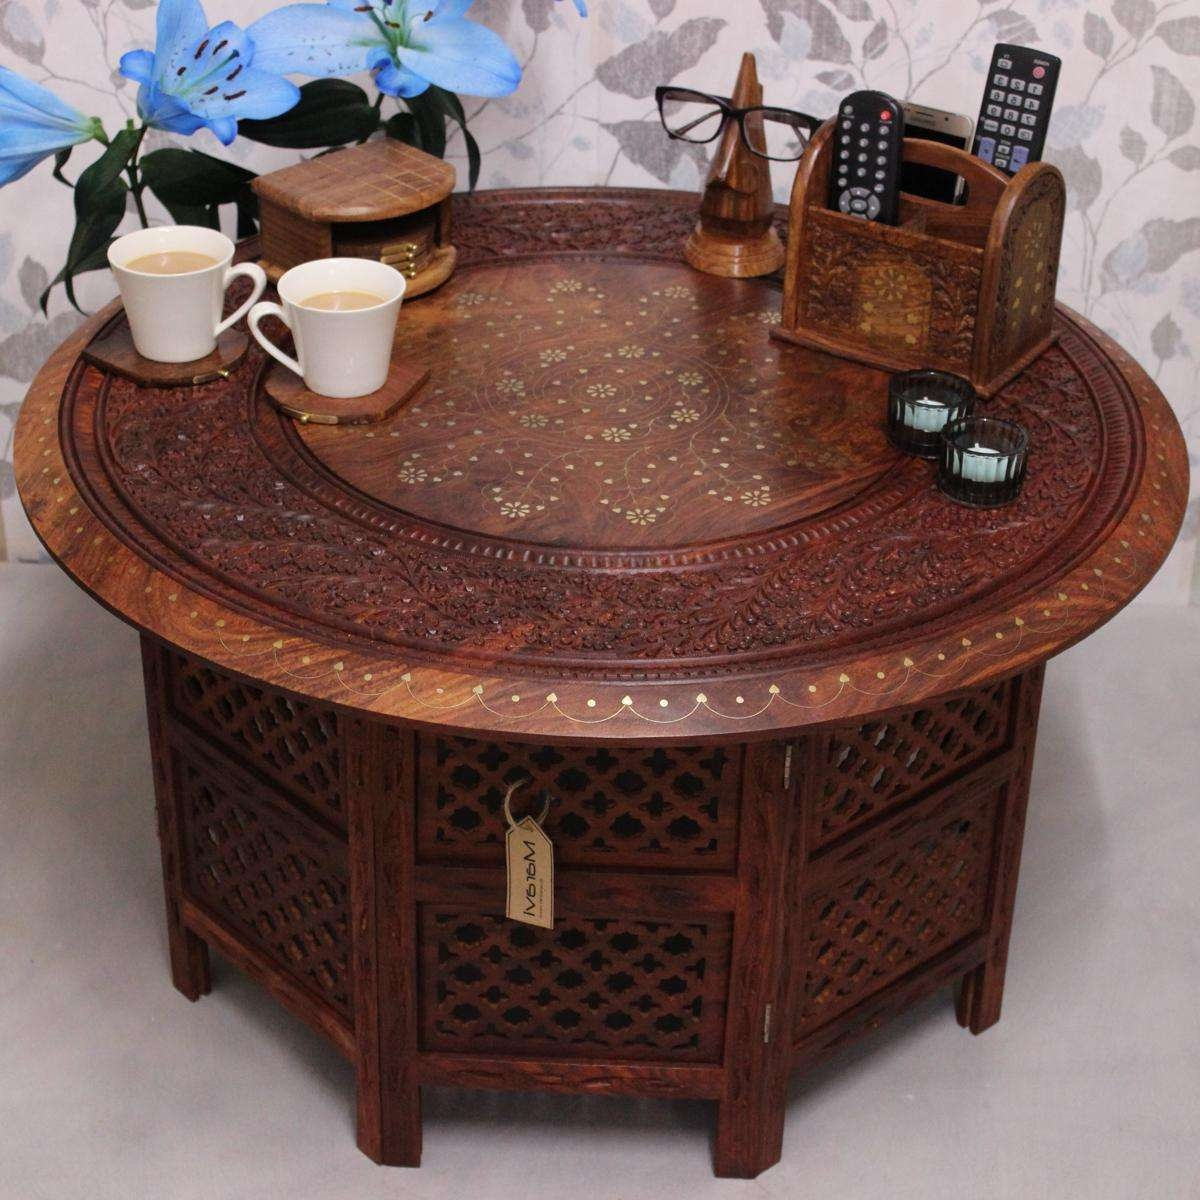 Fashionable Indian Coffee Tables Within Karakoram Maravi Large Round Coffee Table Brown Solid Wooden (View 13 of 20)